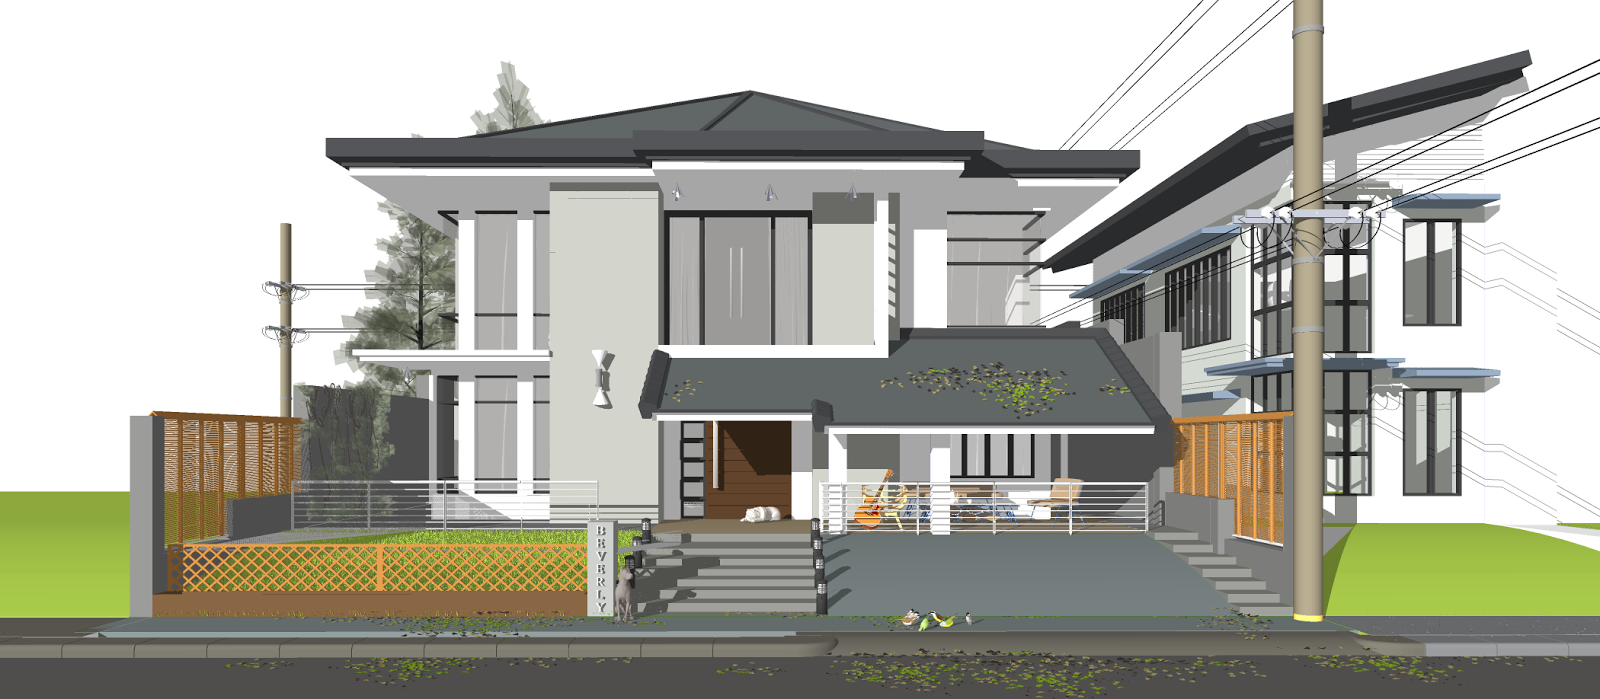 Exterior: Interior Design By Kevin To: Residential Night Scene